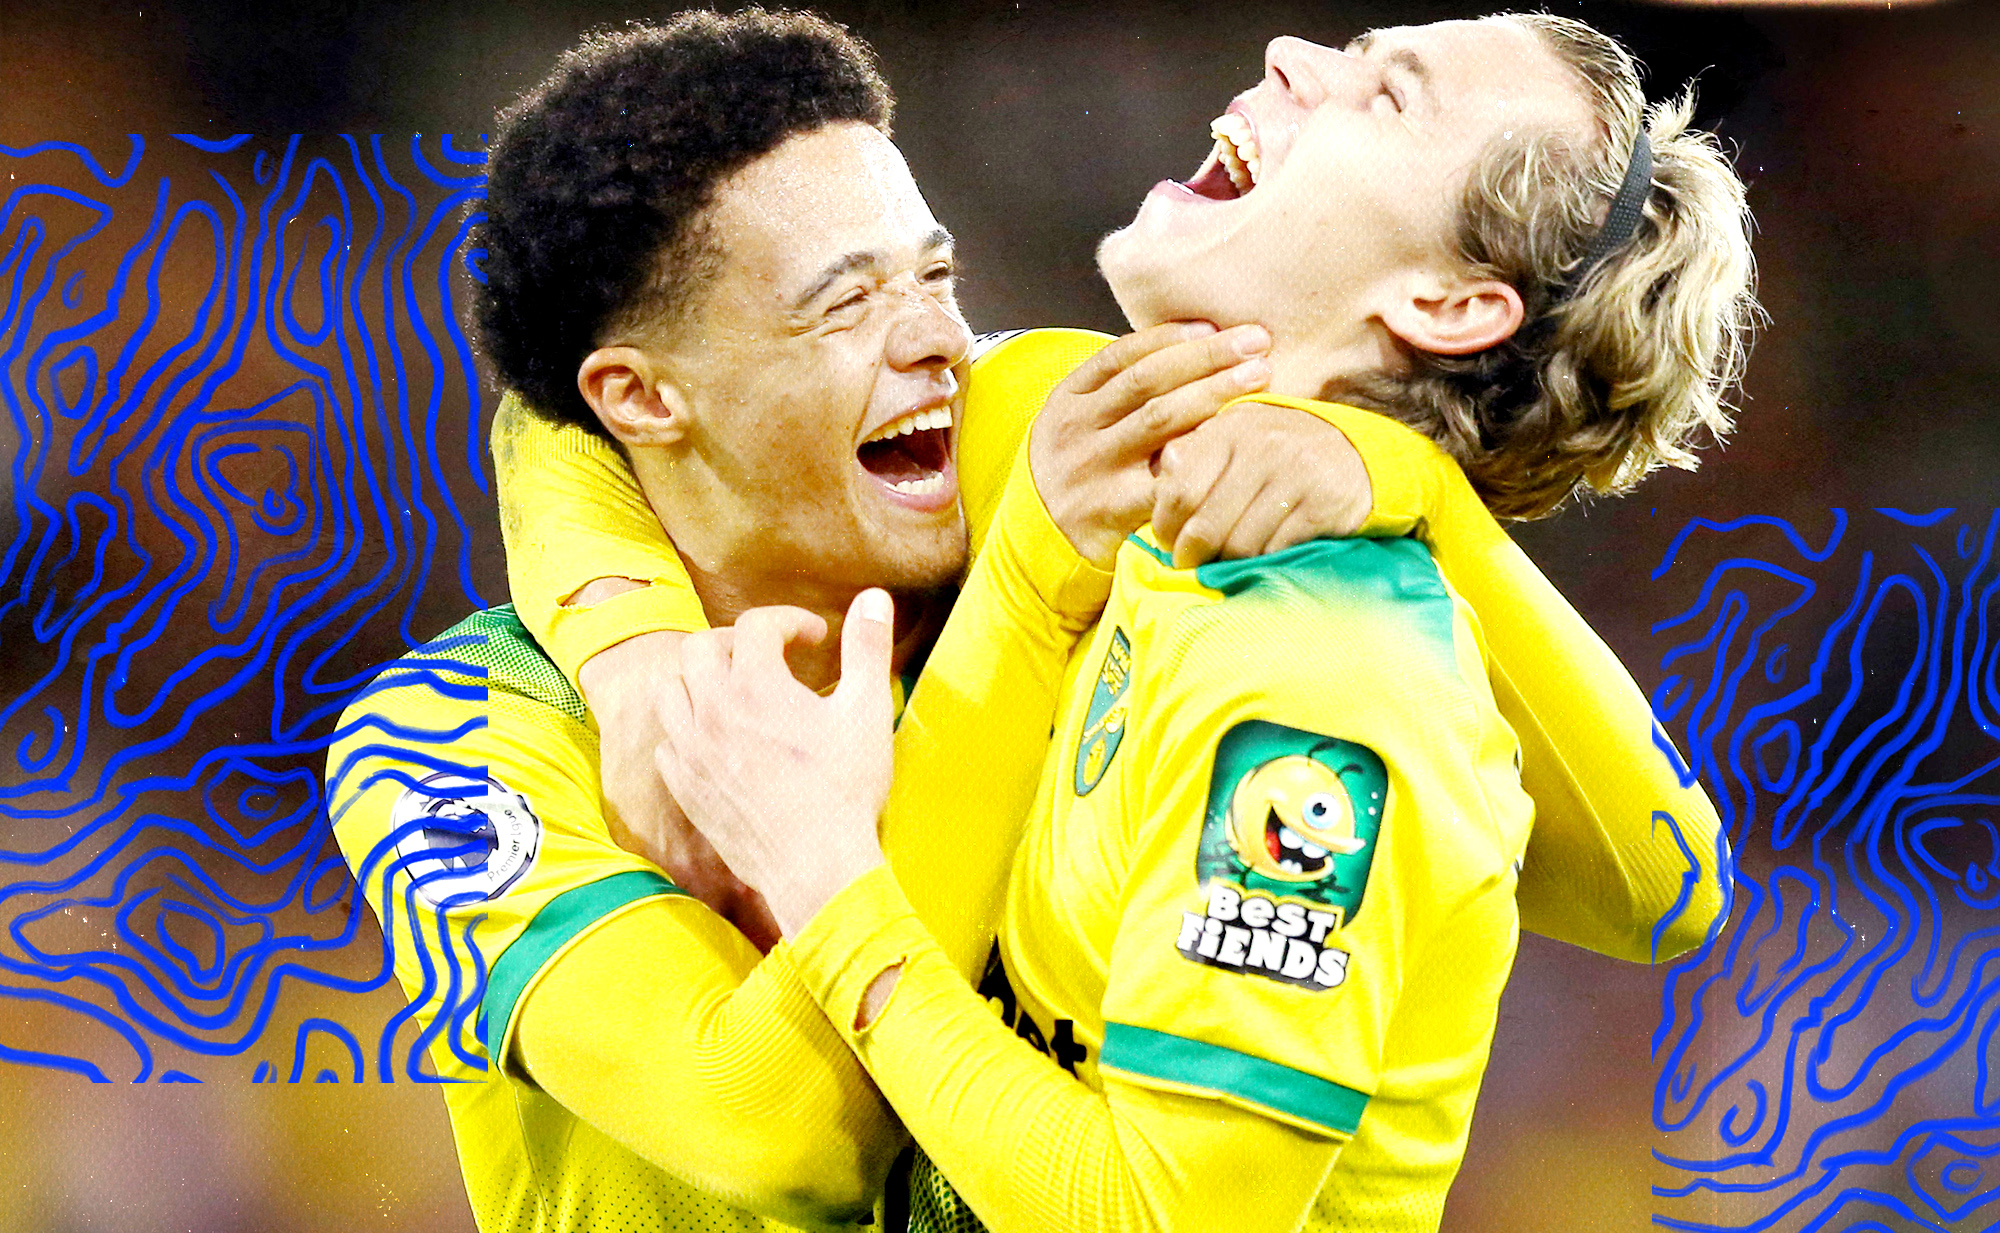 Norwich City's Todd Cantwell and Jamal Lewis celebrate a victory with a hug.